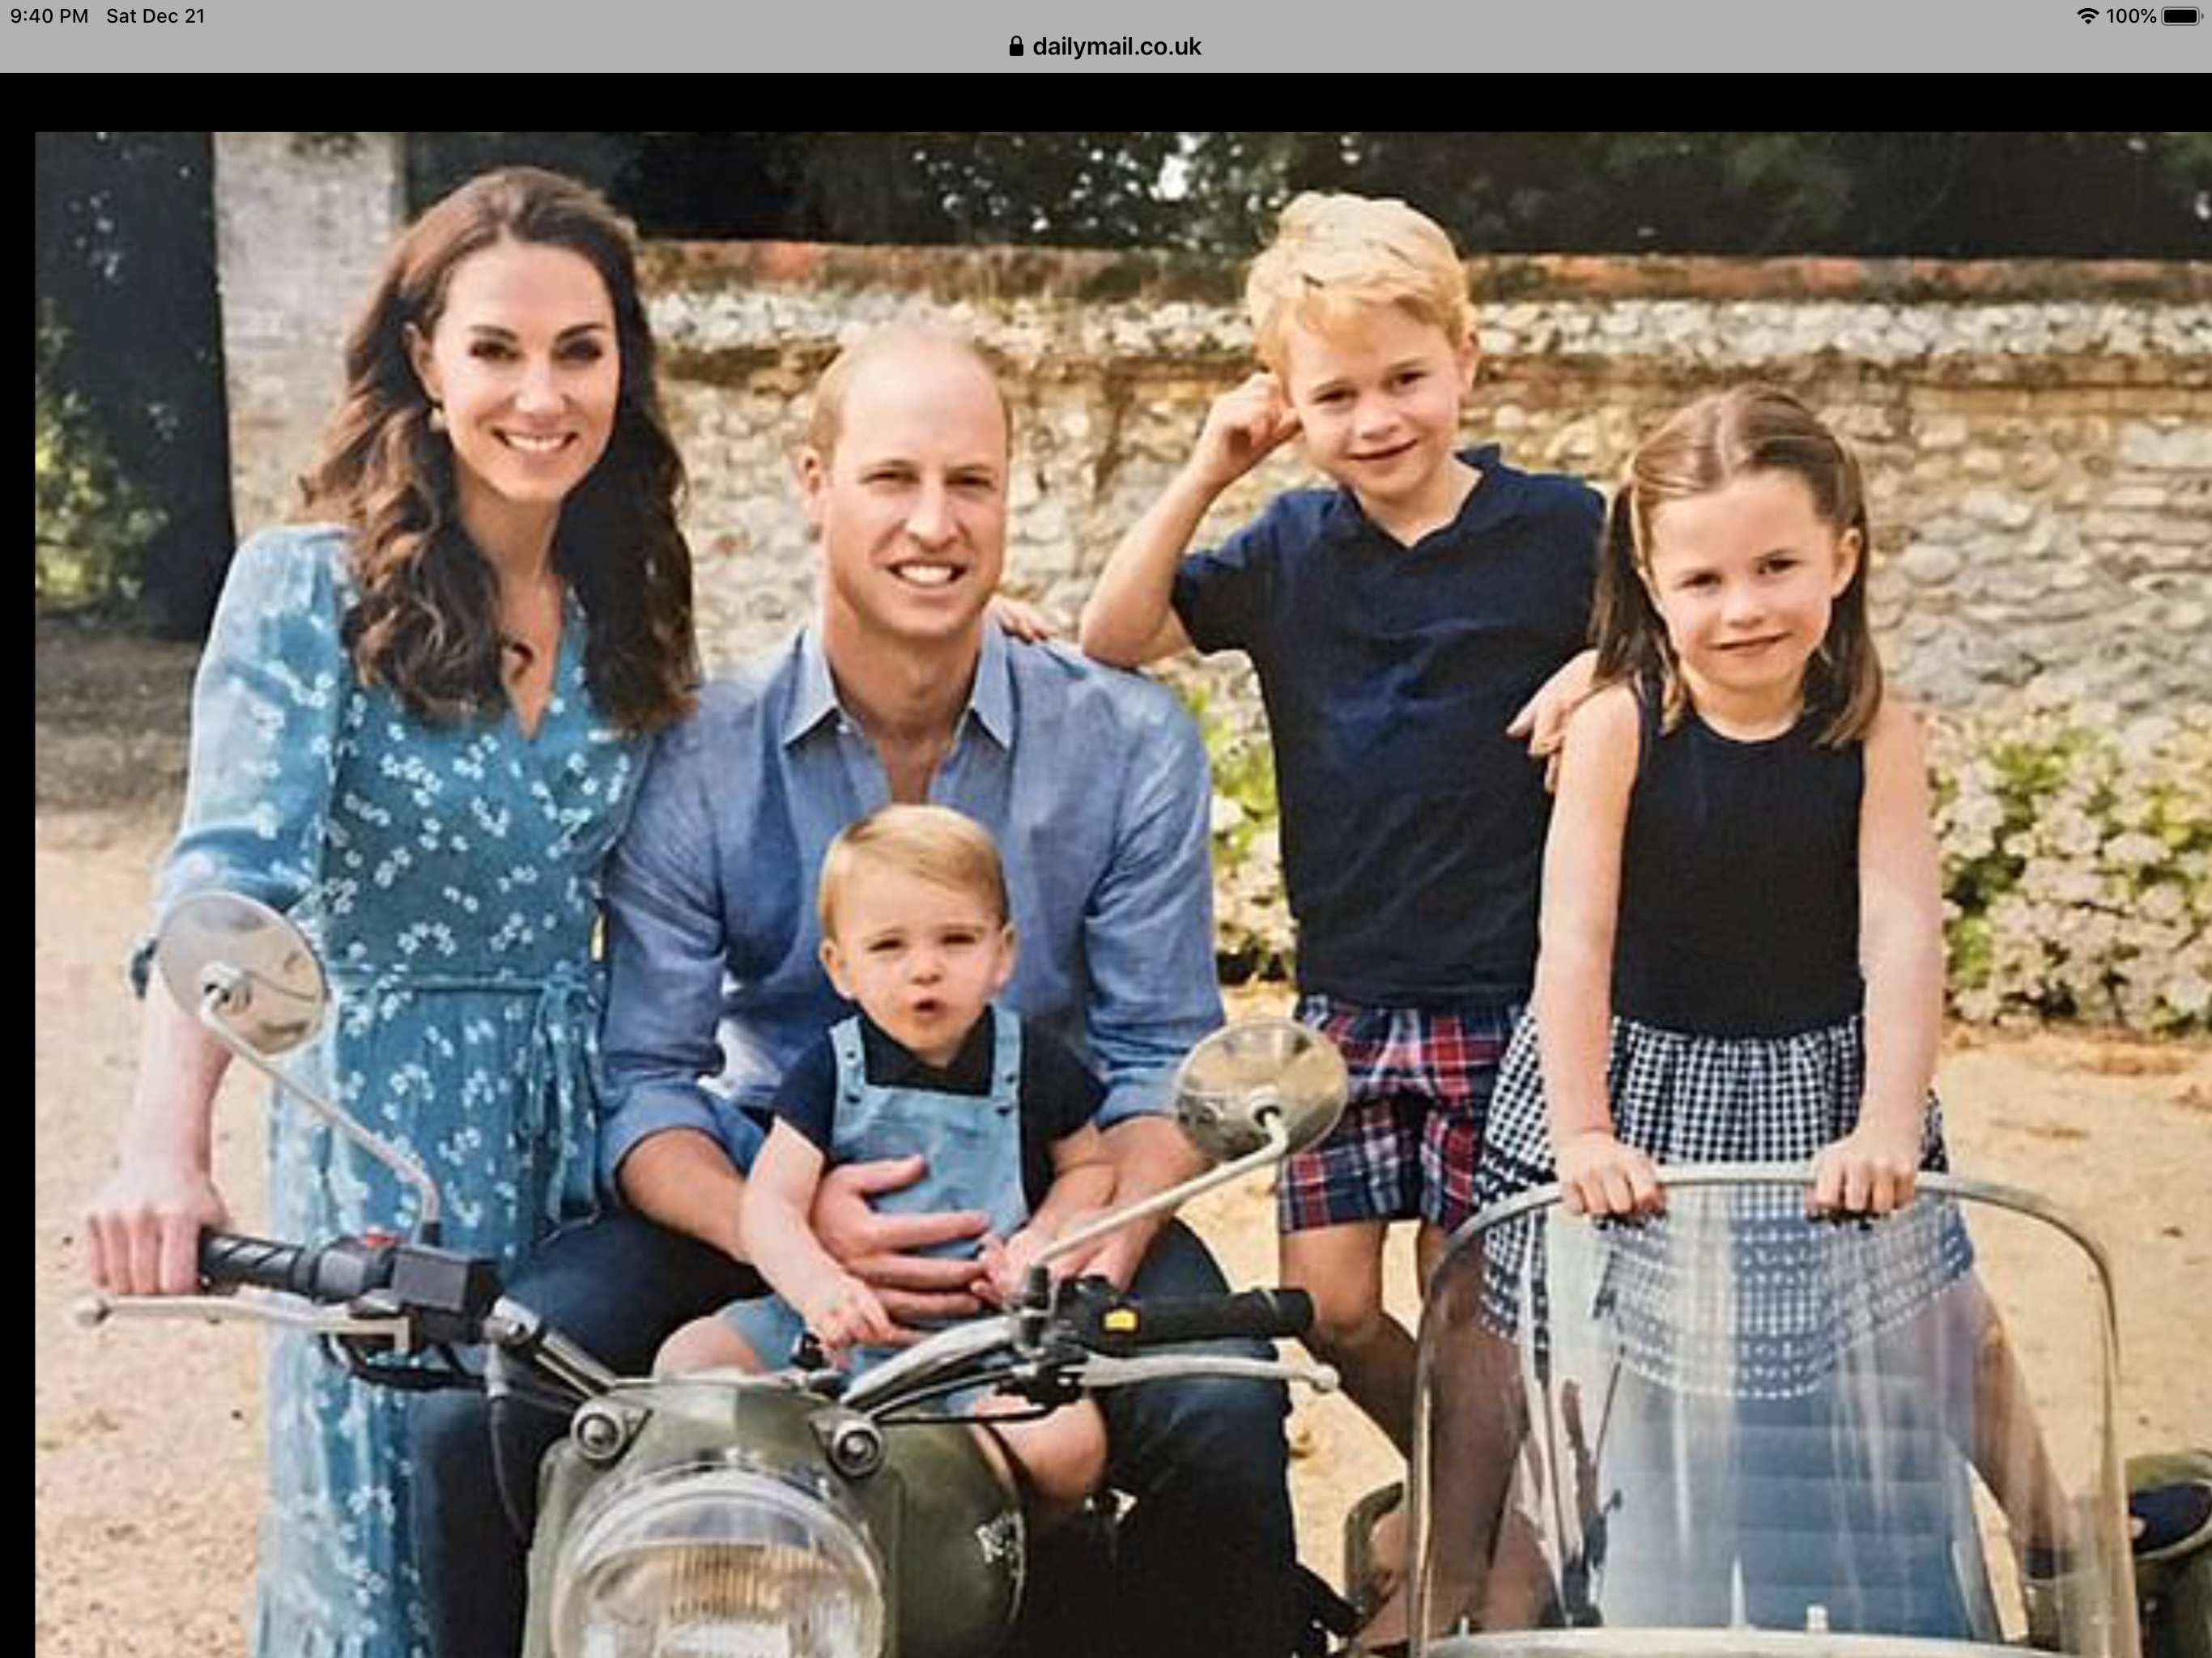 Pin By Judith Ann Clark On Royals In 2020 Prince William Kids Prince William And Catherine Kate Middleton Prince William